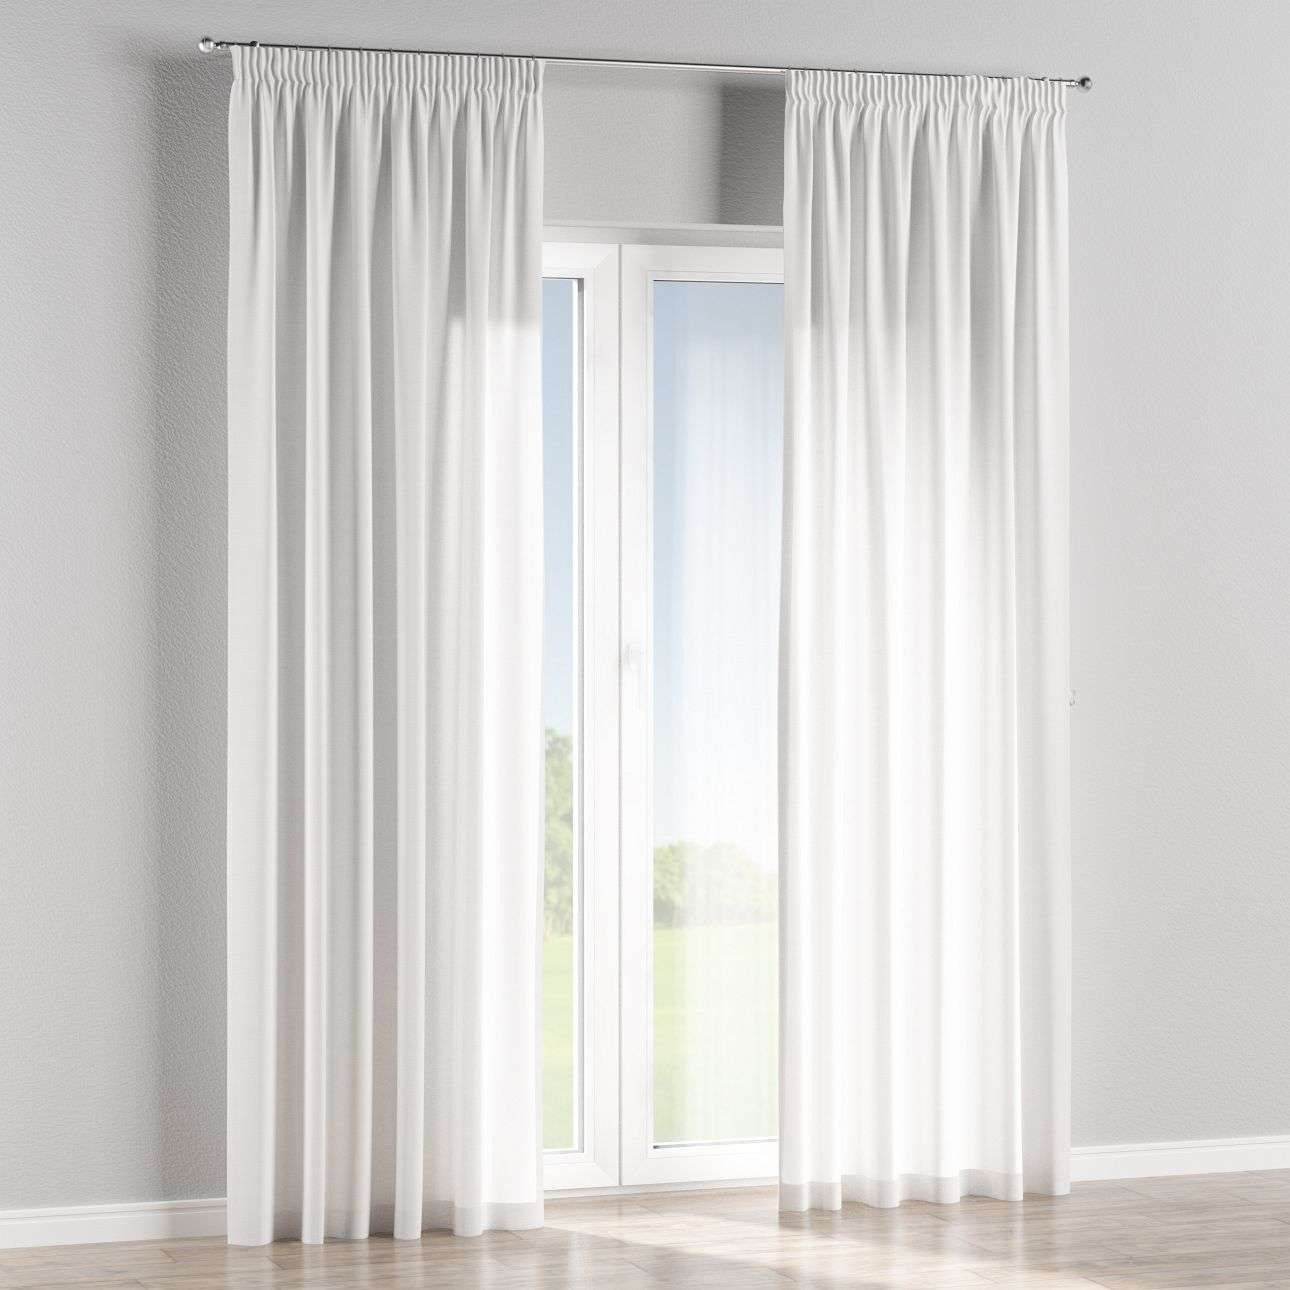 Pencil pleat curtains in collection Jupiter, fabric: 127-01